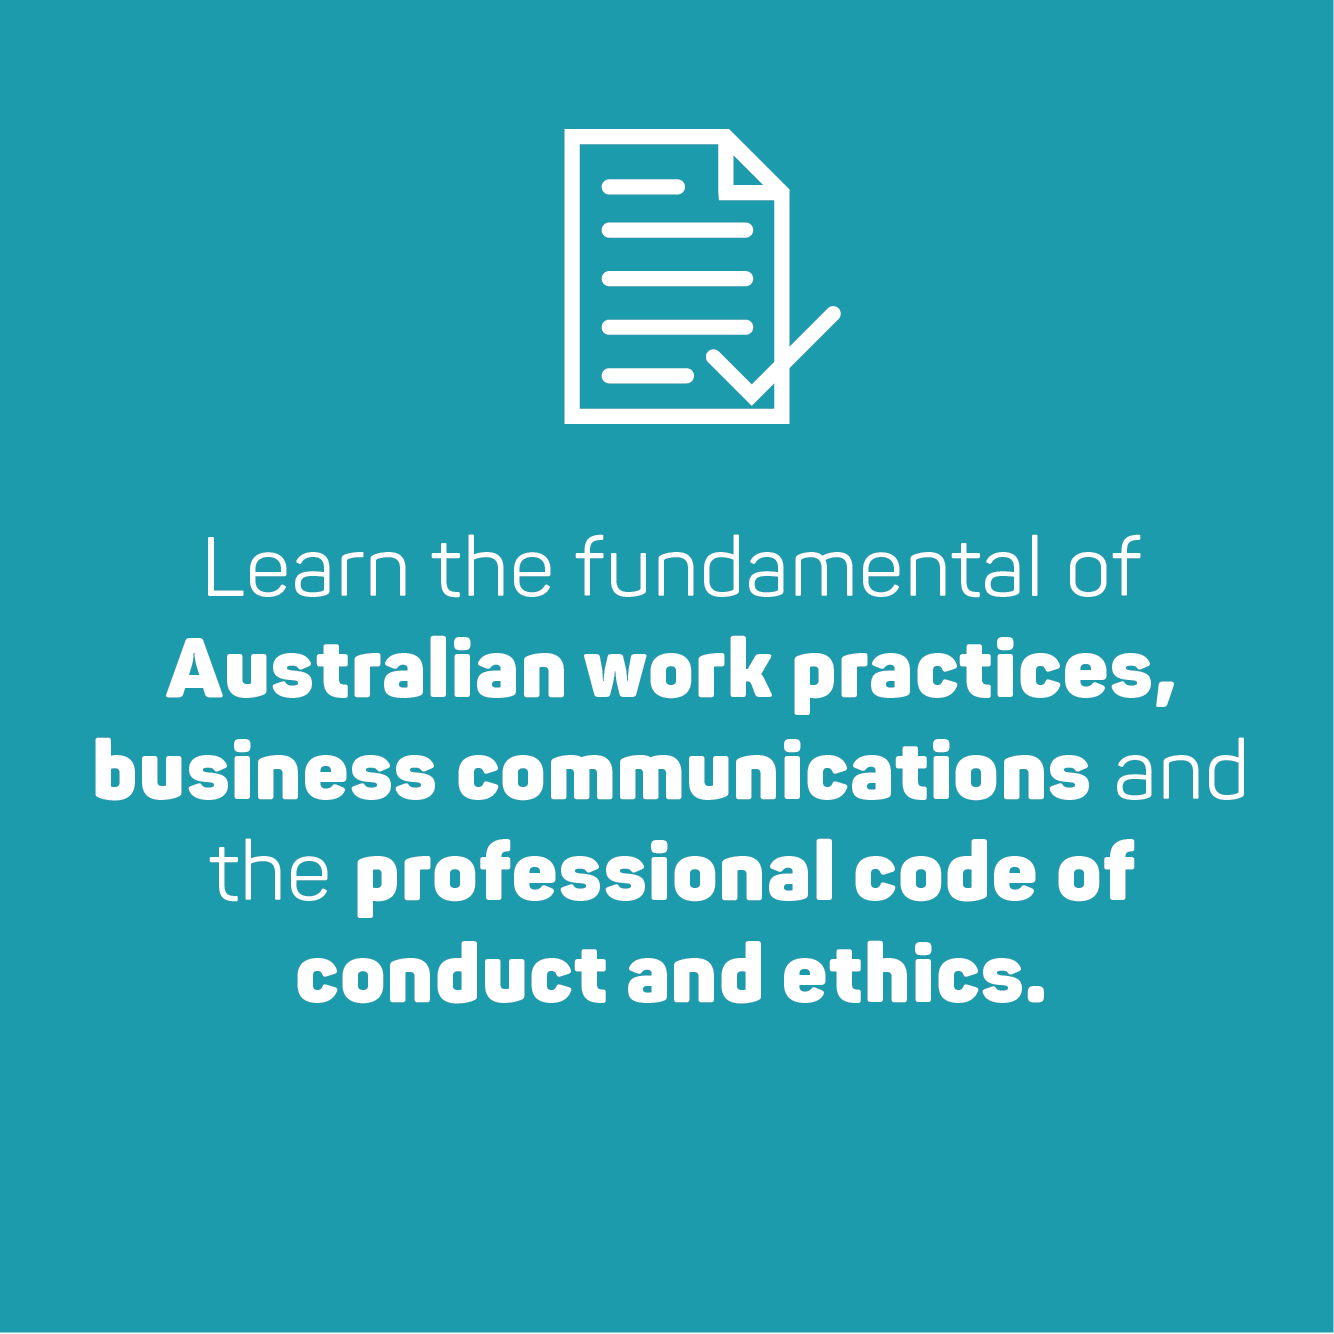 learn the fundamentals of Australian work practices